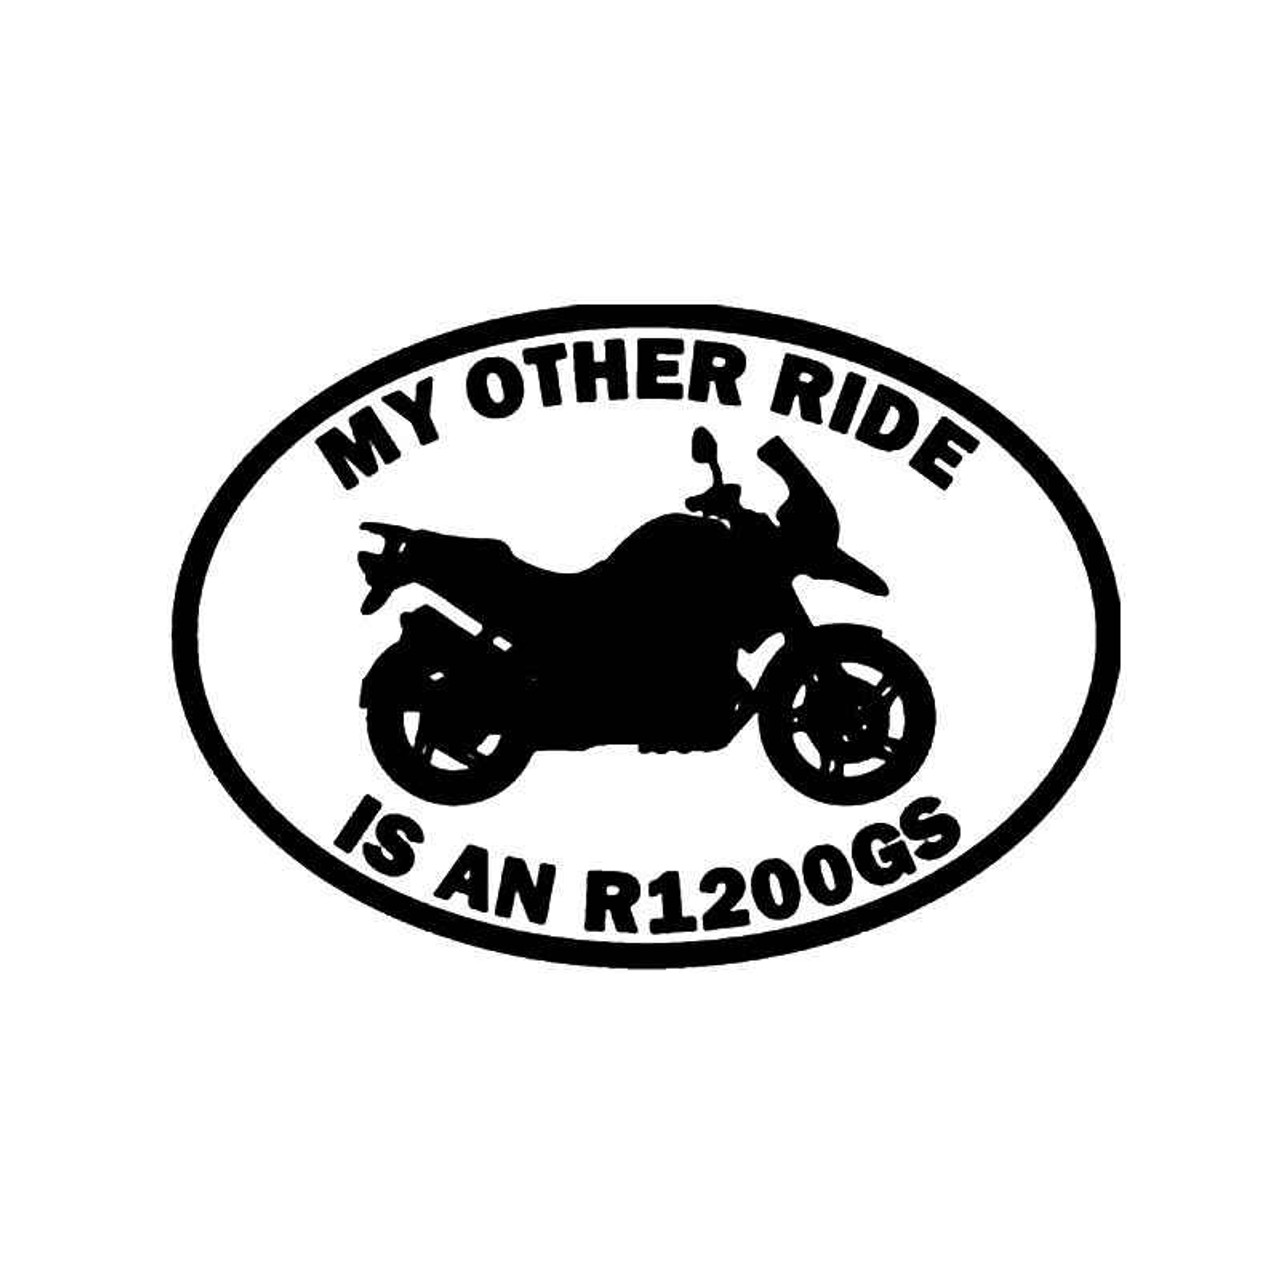 My Other Ride Bmw R1200clc Motorcycle Vinyl Sticker